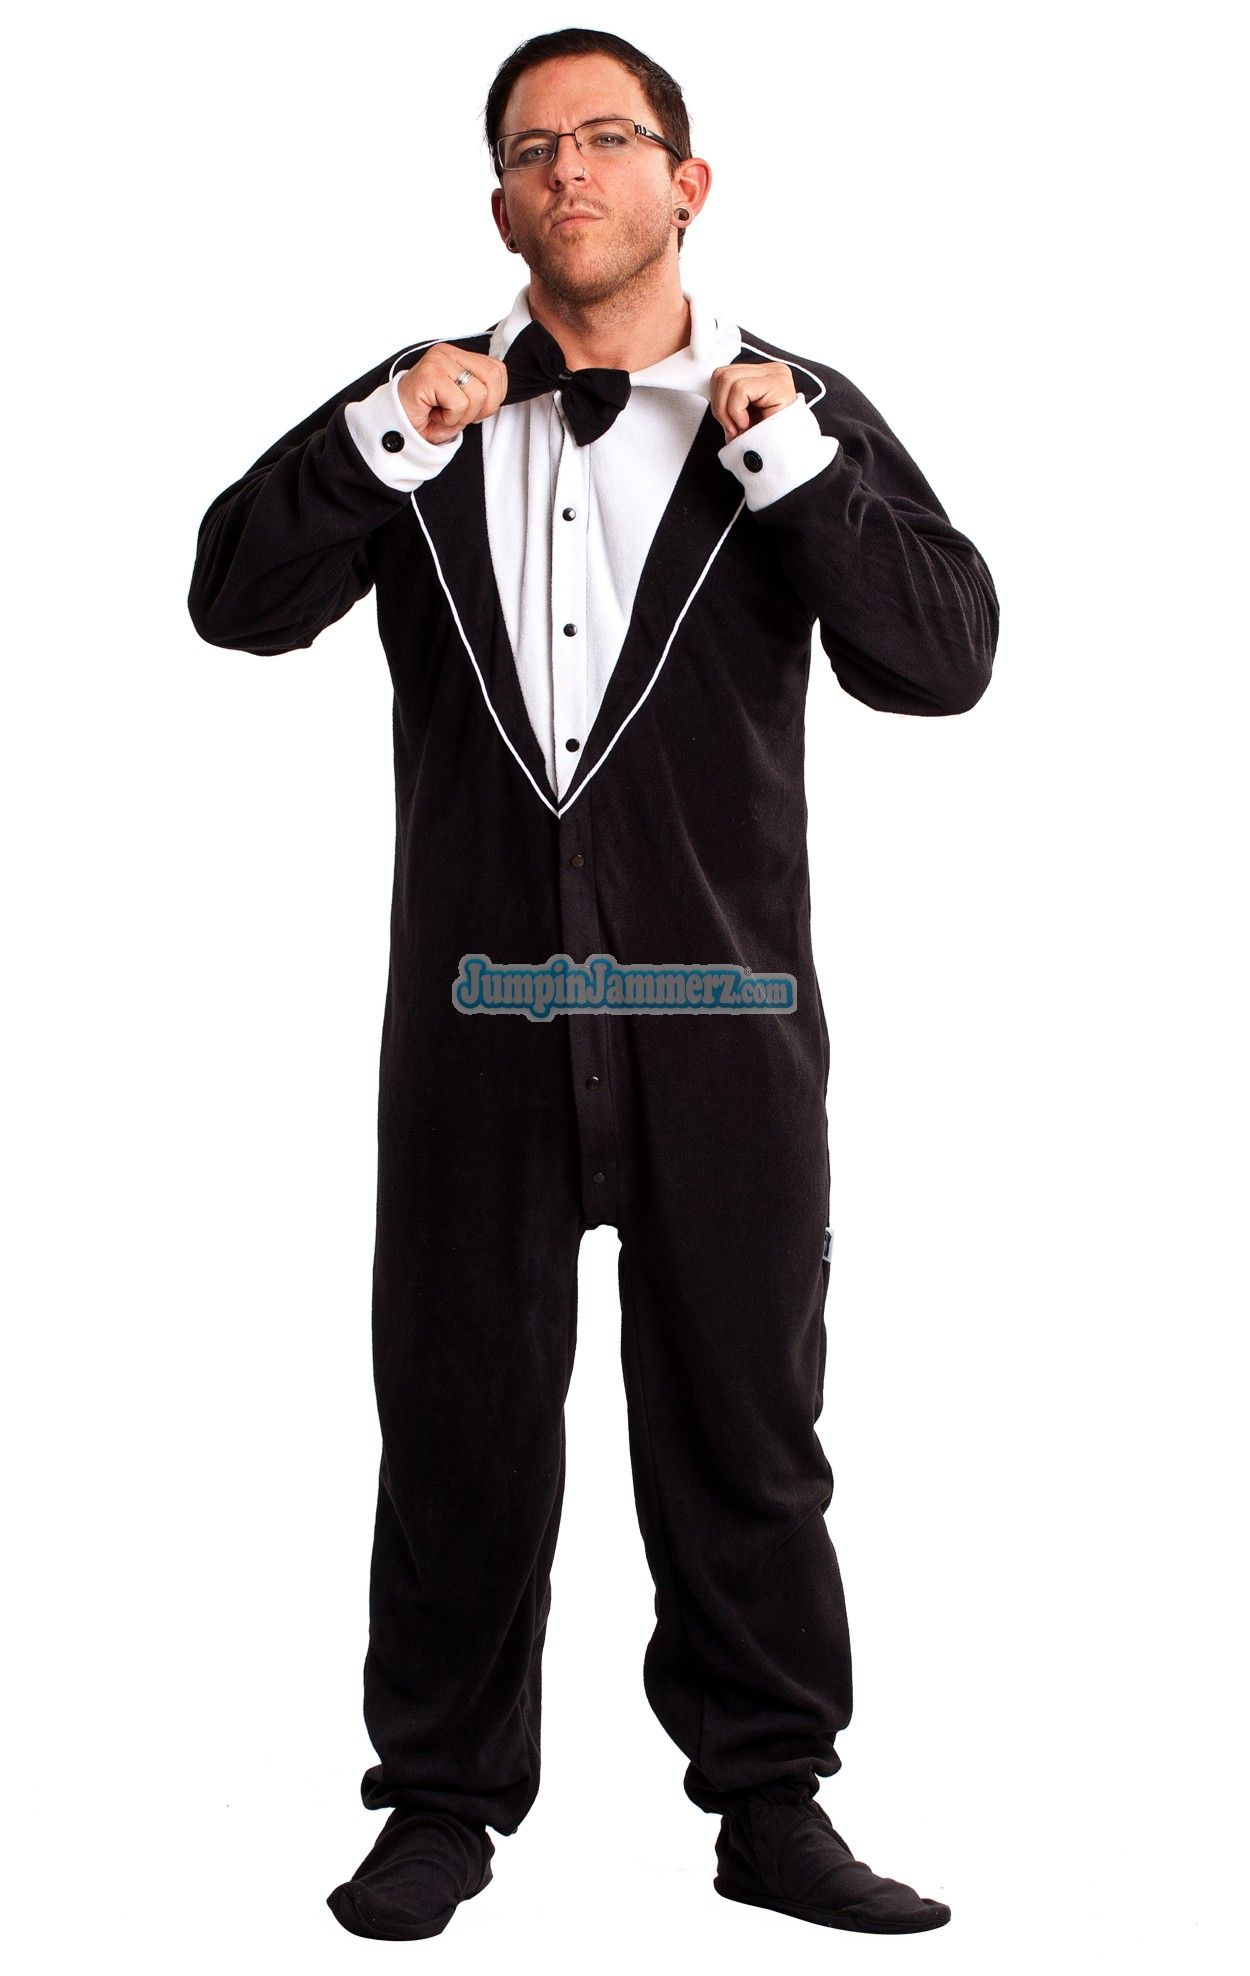 3be60cd4fa05 These Black Tuxedo Footed Pajamas are fun and comfortable. Now ...